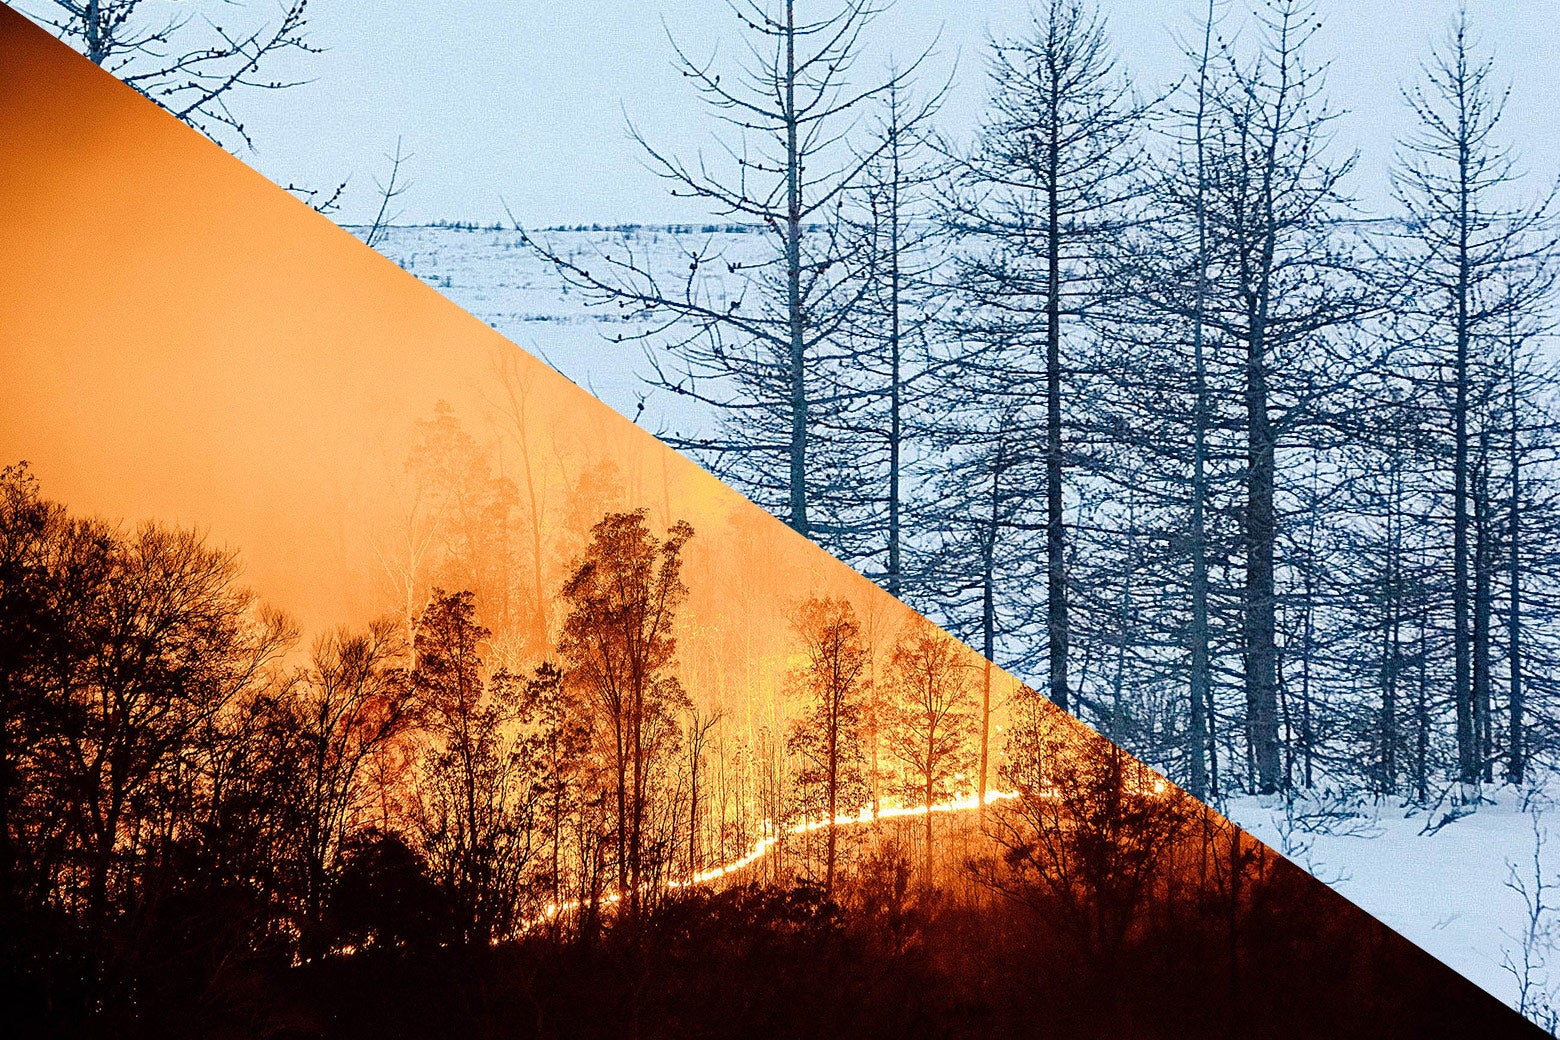 A split-screen of a wildfire and a snowy woods. The forecast app Dark Sky is predicting wild weather in the coming days.